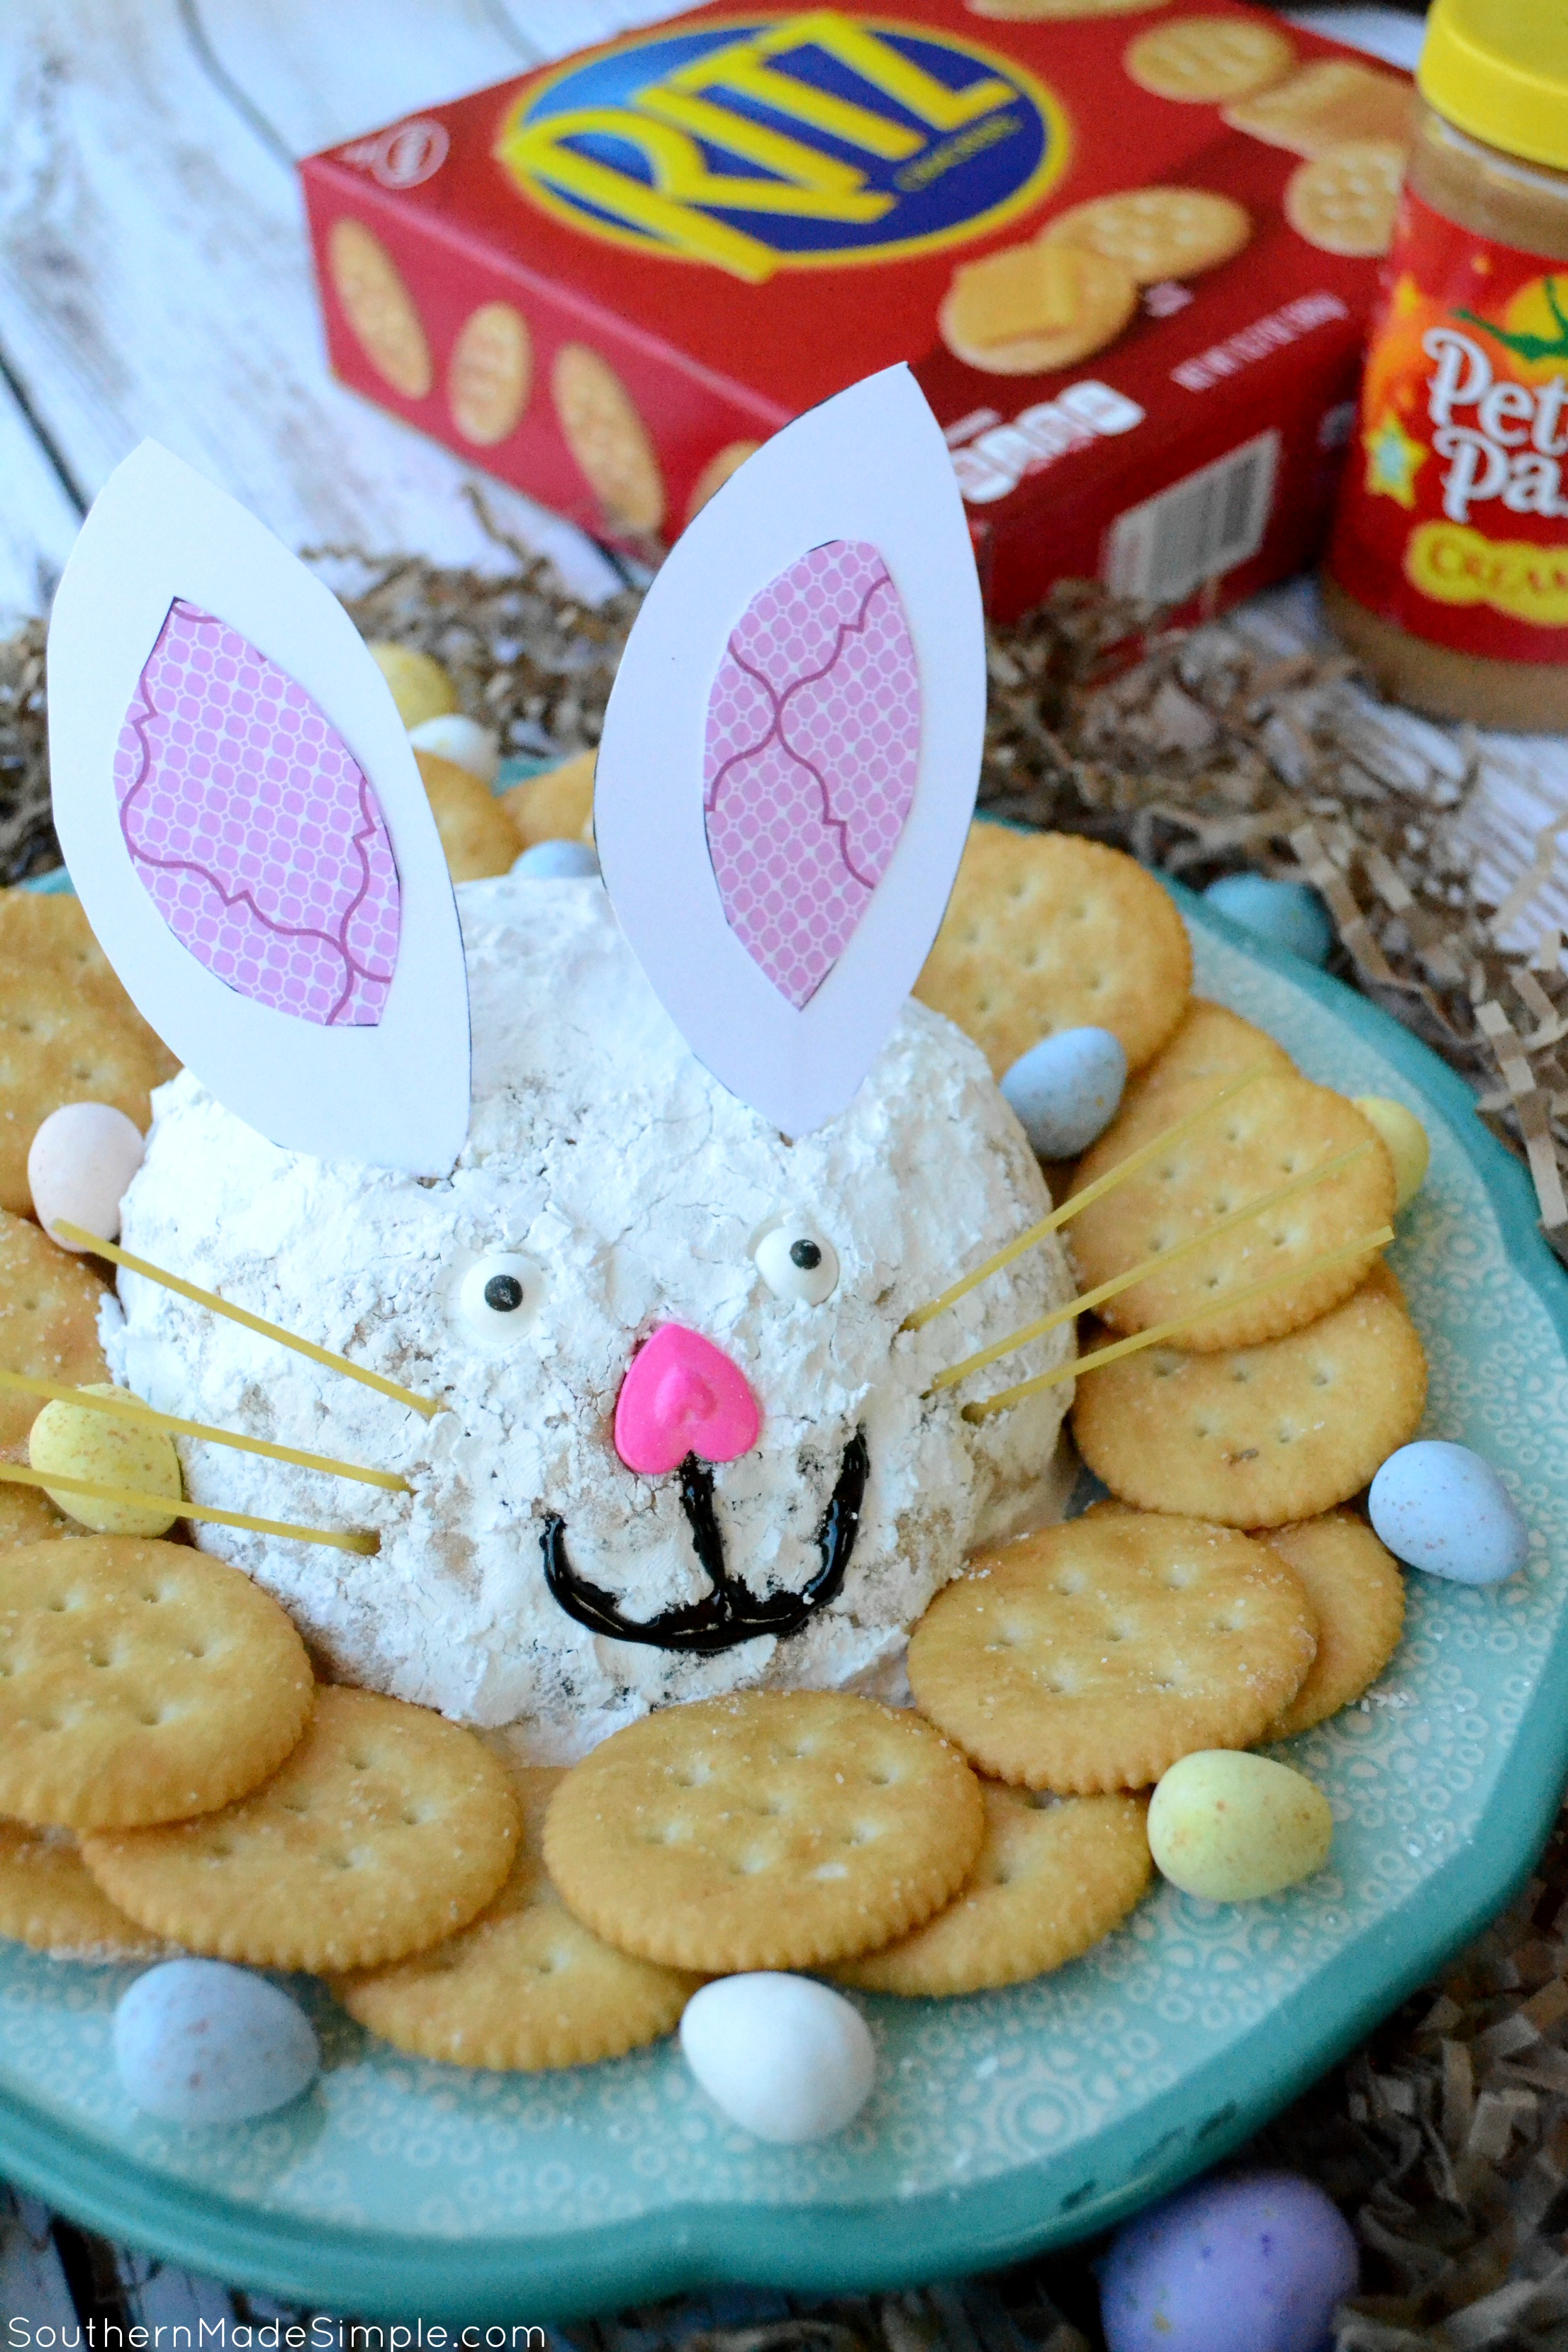 Looking for a quick sweet treat to share with others this spring? This easy Easter Bunny Peanut Butter Cheese Ball will make any gathering a hoppin' good time! #RITZpiration #ad Visit @Walmart in stores 4/15/17 for an in store demo, recipes and more!